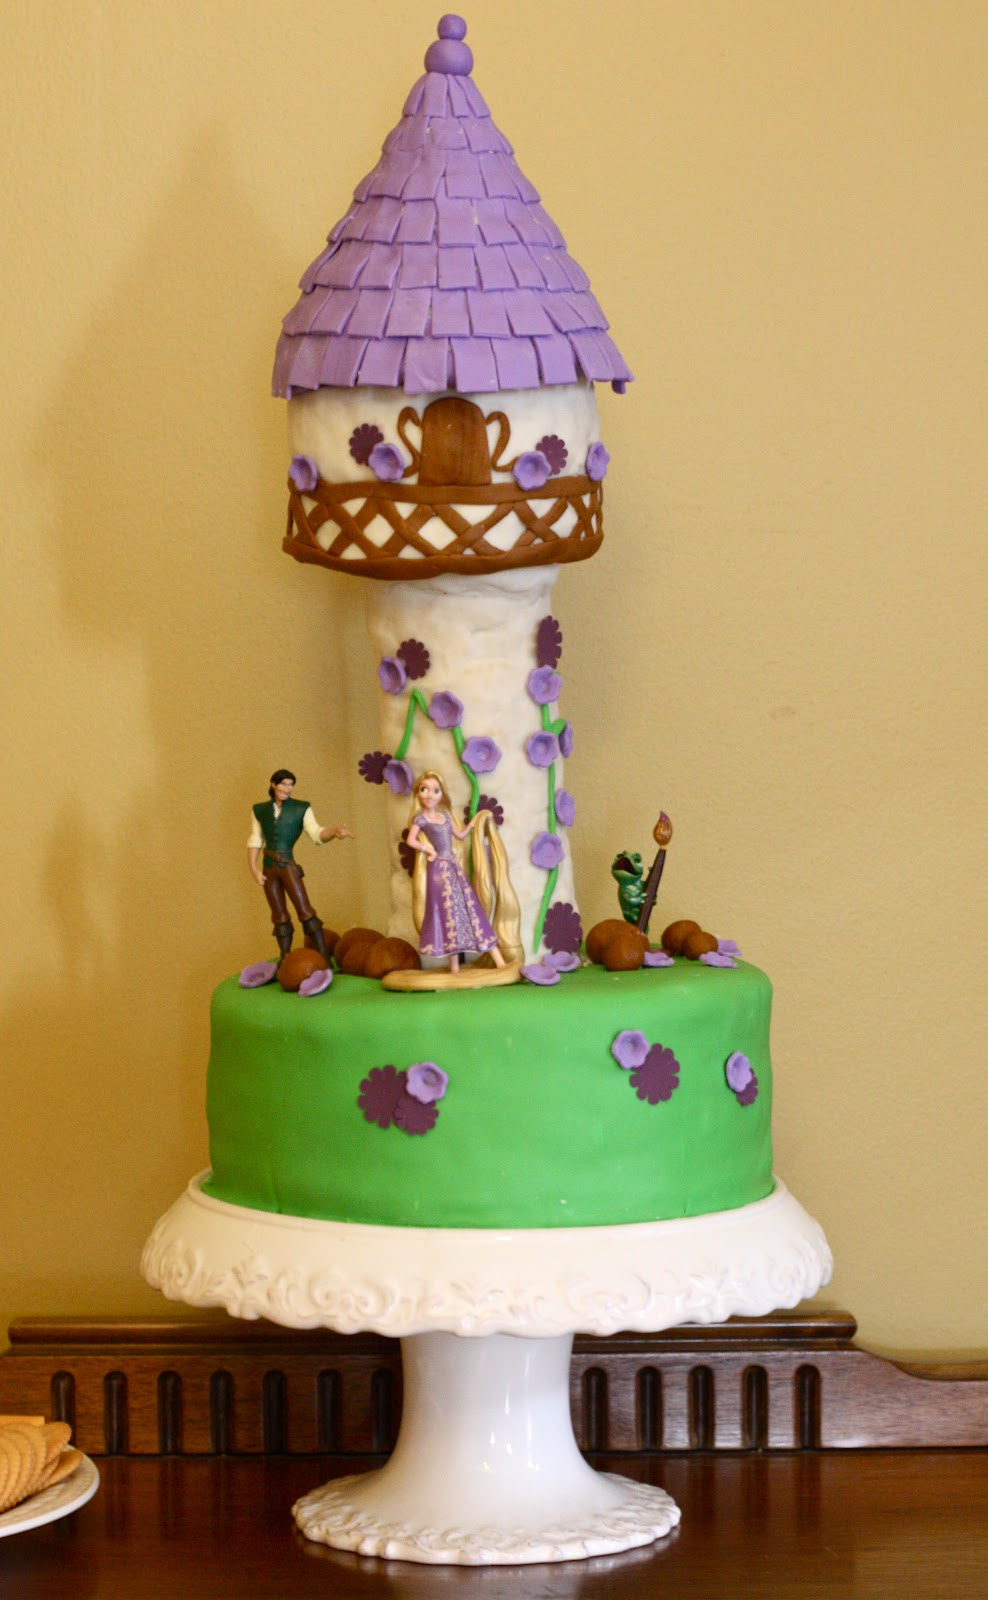 This was one of the hardest cakes Ive ever done. I ran out of time ...